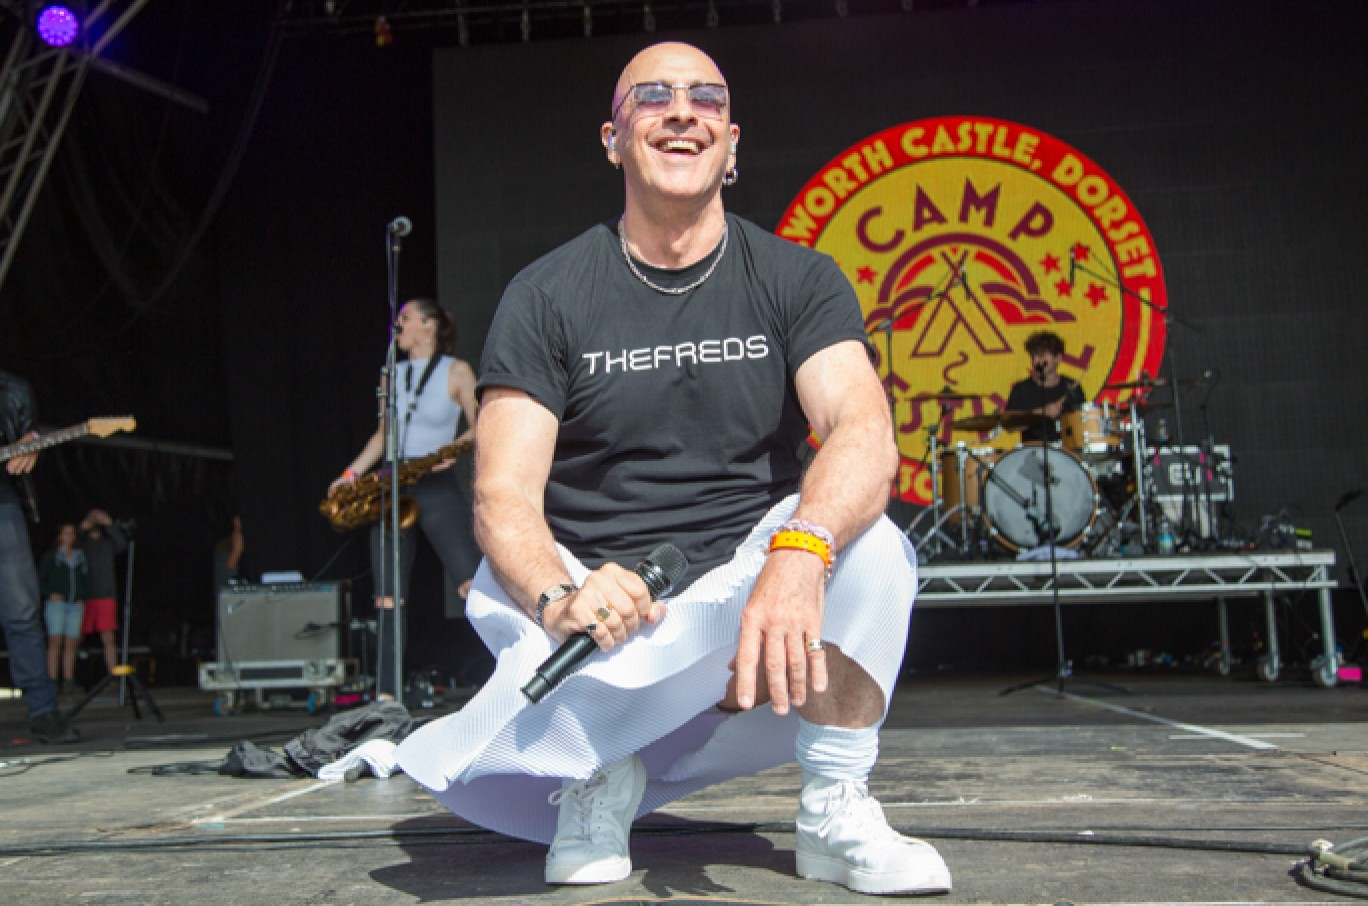 6_76-camp-bestival-2017-right-said-fred-rb-f61a25801501585042